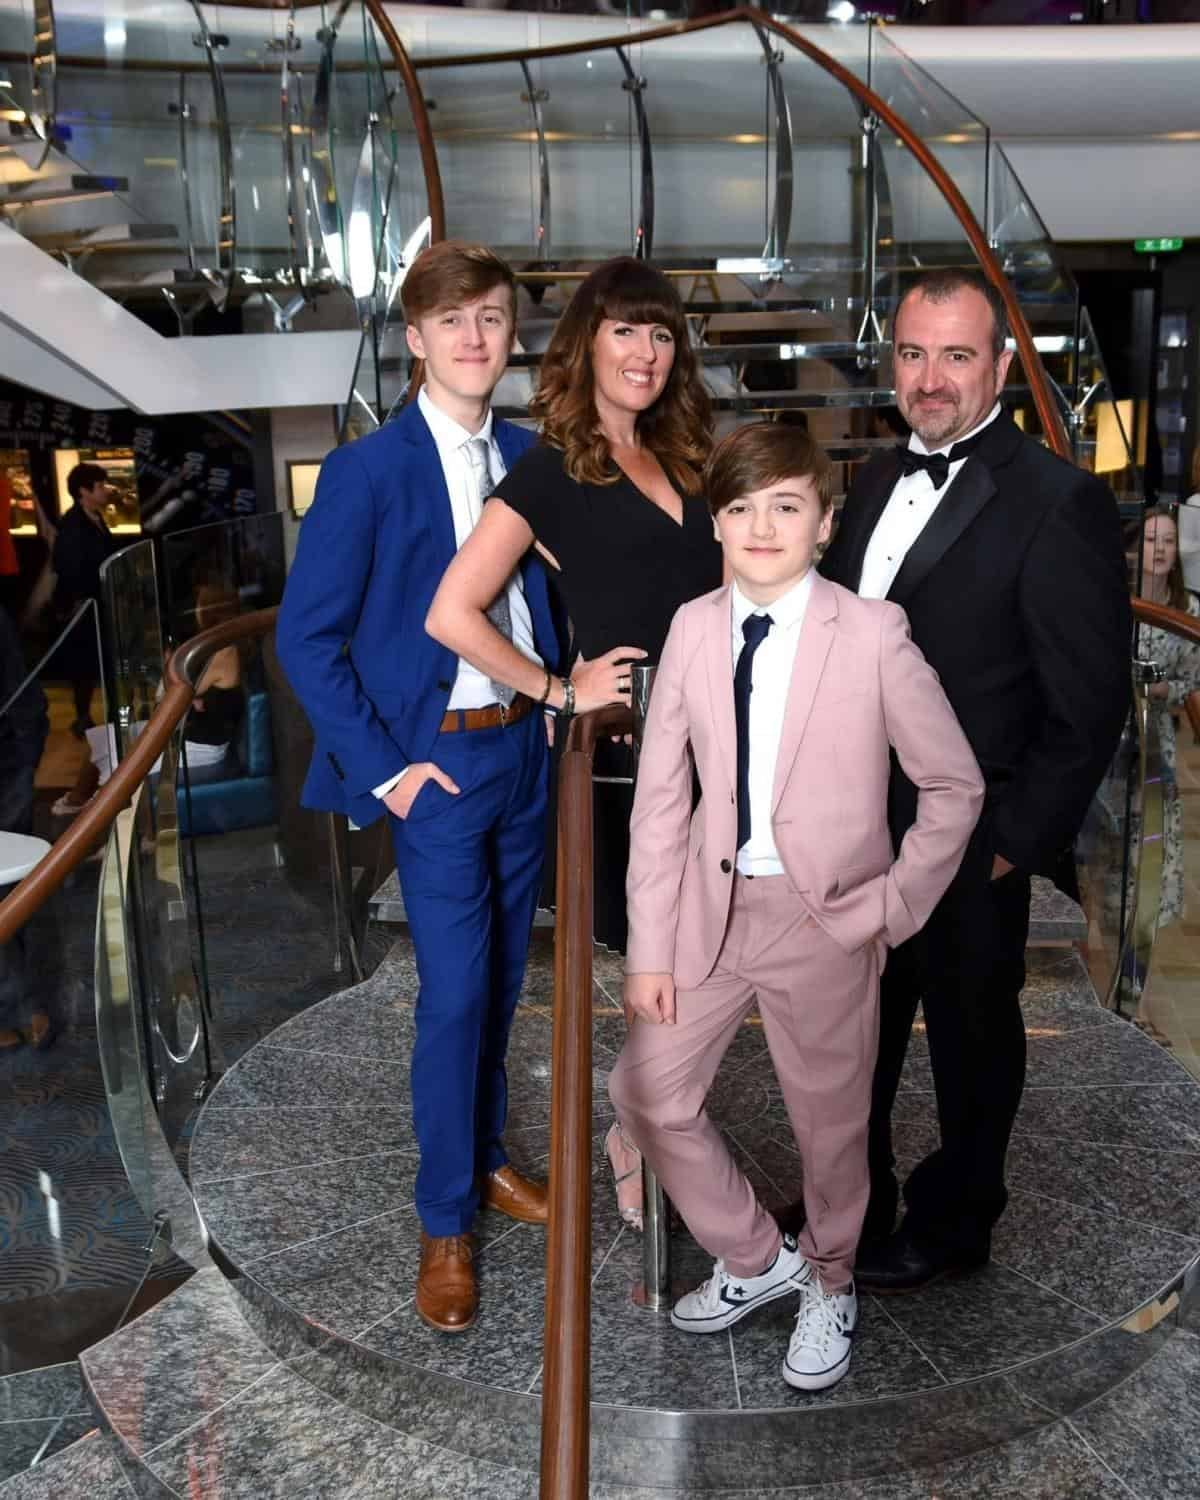 Royal Caribbean Symphony of the Seas Formal Night, What To Wear On Cruise Formal Night For Families